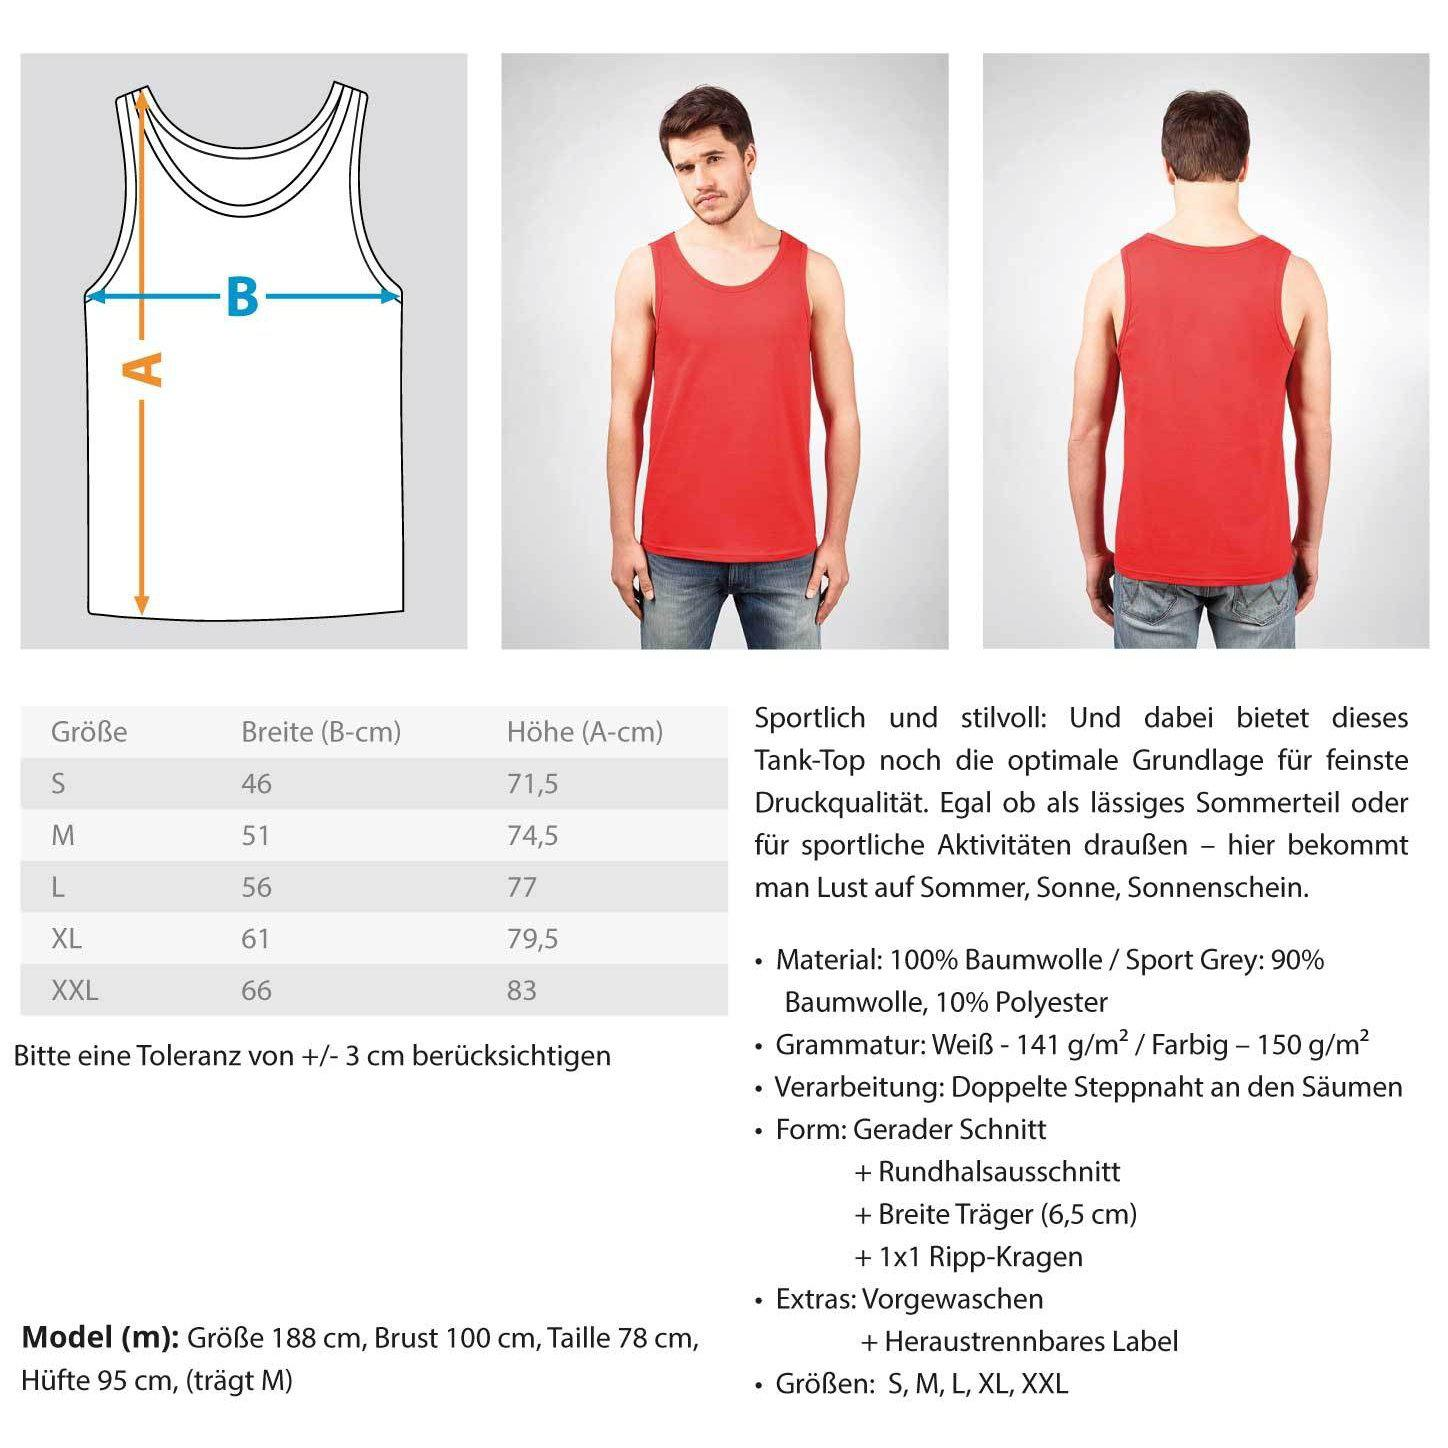 Get trippy - Remind me - Rave On!® - Herren Tanktop Herren Tank-Top - Rave On!® der Club & Techno Szene Shop für Coole Junge Mode Streetwear Style & Fashion Outfits + Sexy Festival 420 Stuff